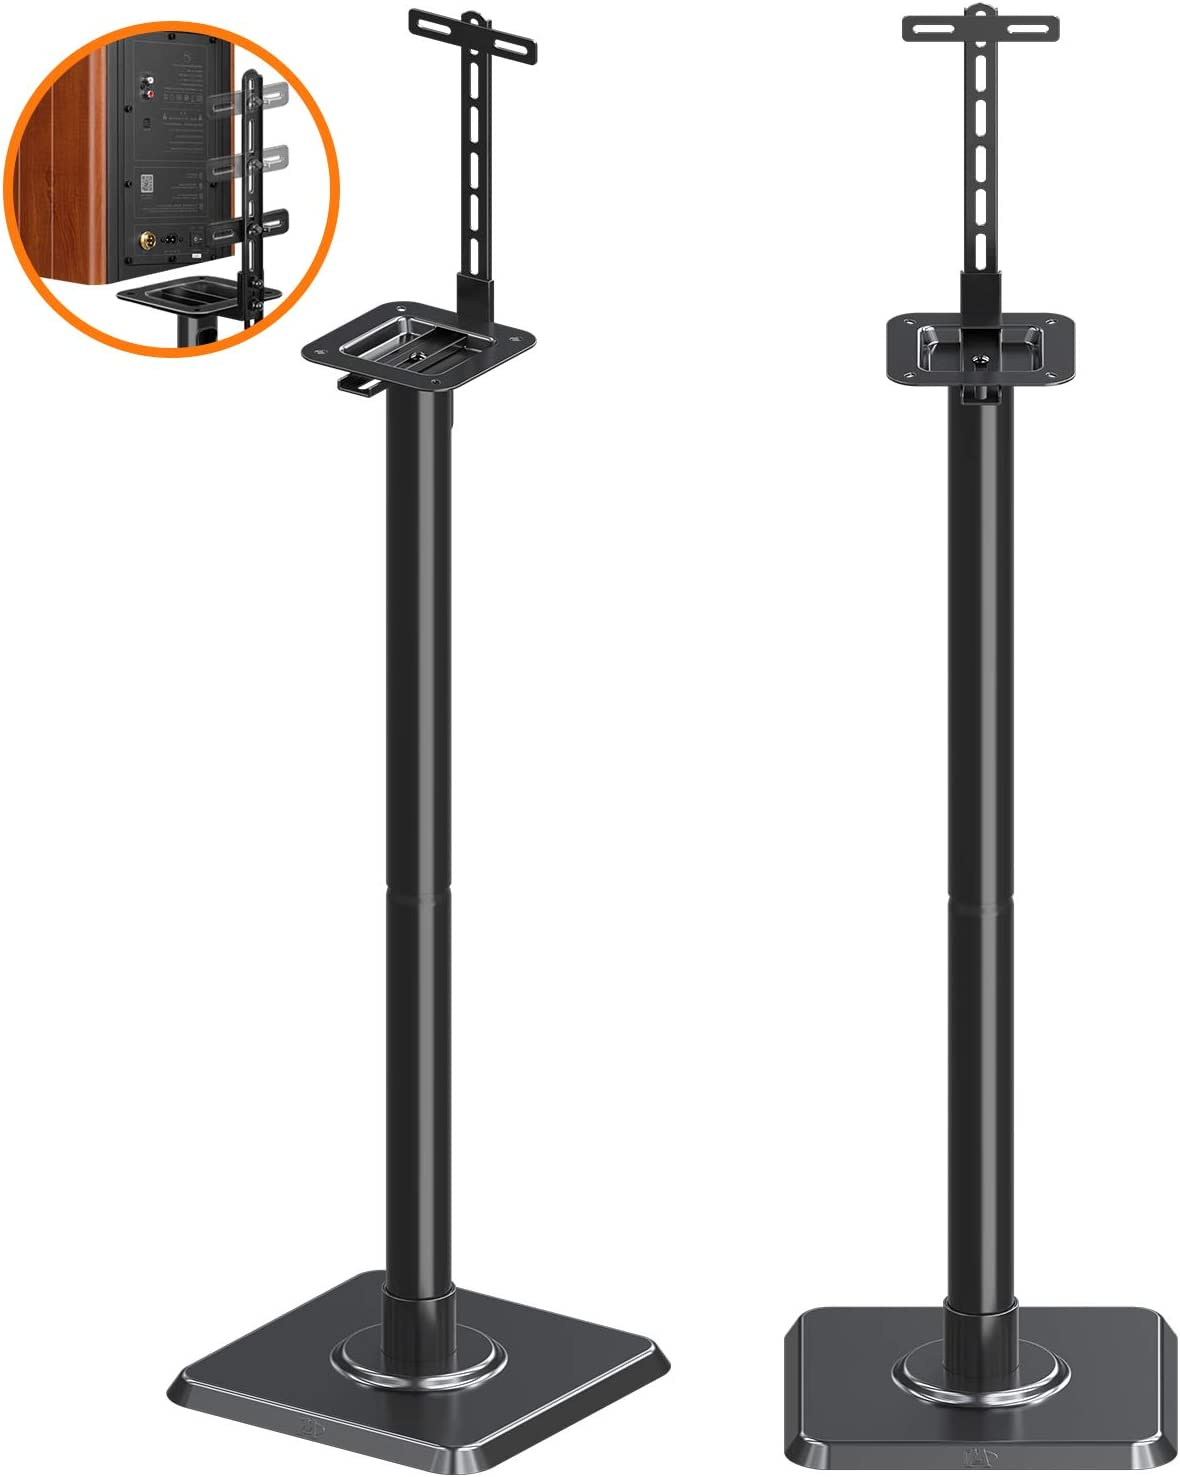 Mounting Dream Speaker Stands Bookshelf Speaker Stands